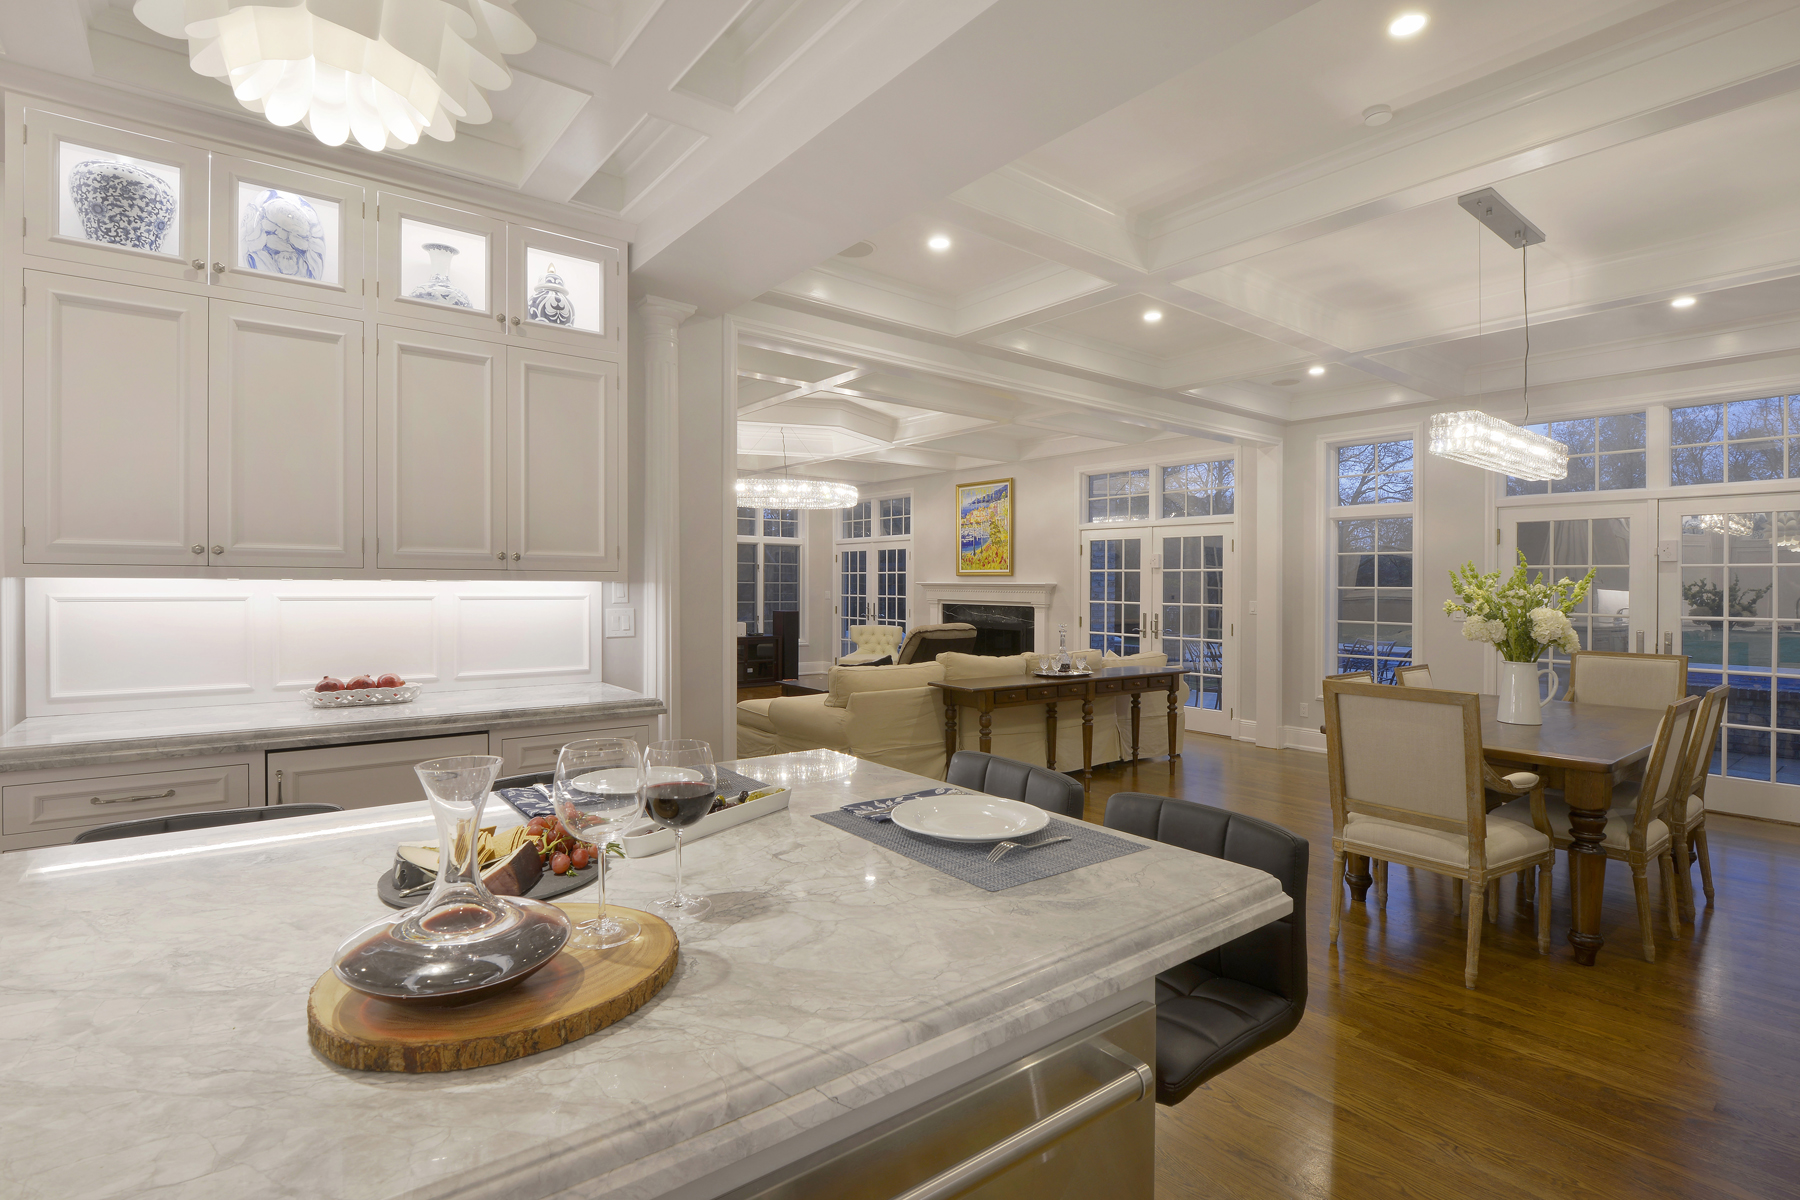 Expansive kitchen with white painted fully custom Bilotta cabinets and oak flooring opens up into dining and living room areas. Large island with marble top and seating. Designed by Fabrice Garson of Bilotta Kitchens.